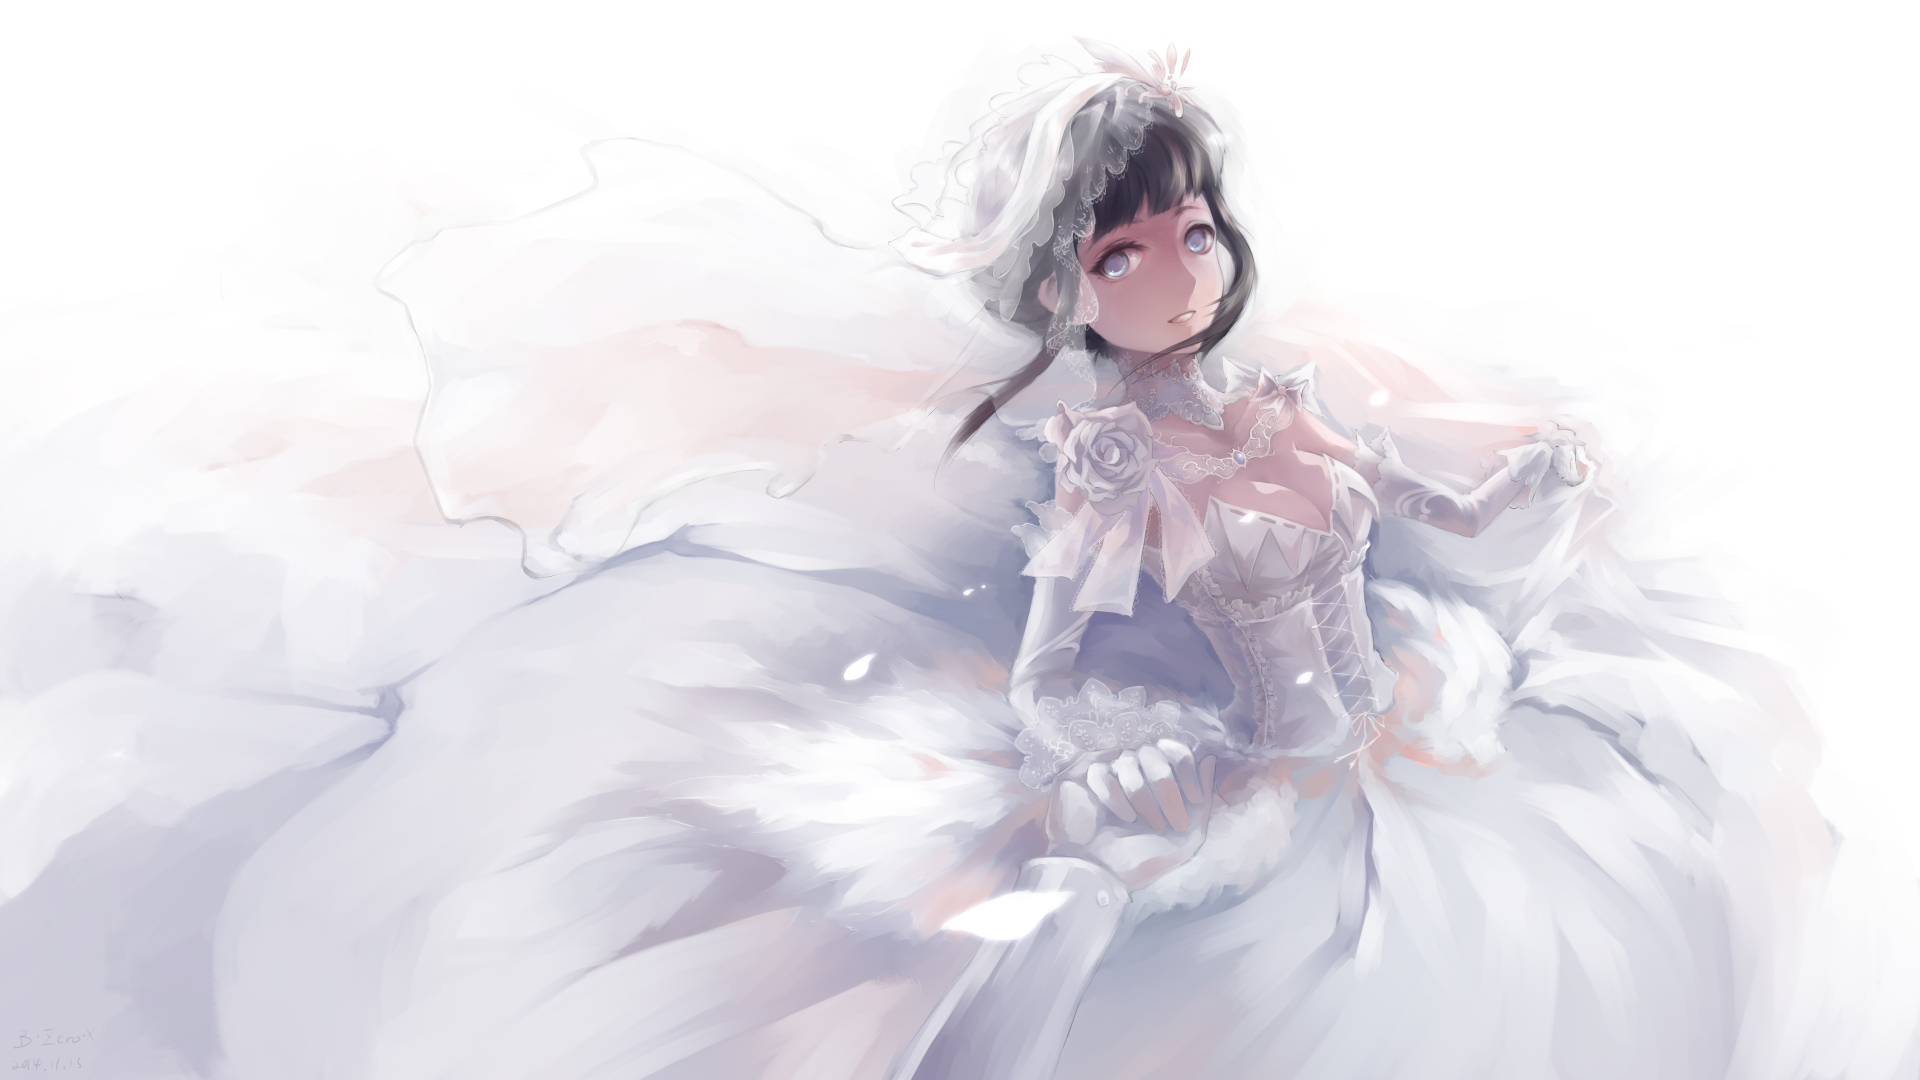 Naruto Hinata Wedding.Hinata Hyuga Alternate Wedding Dress Naruto Know Your Meme